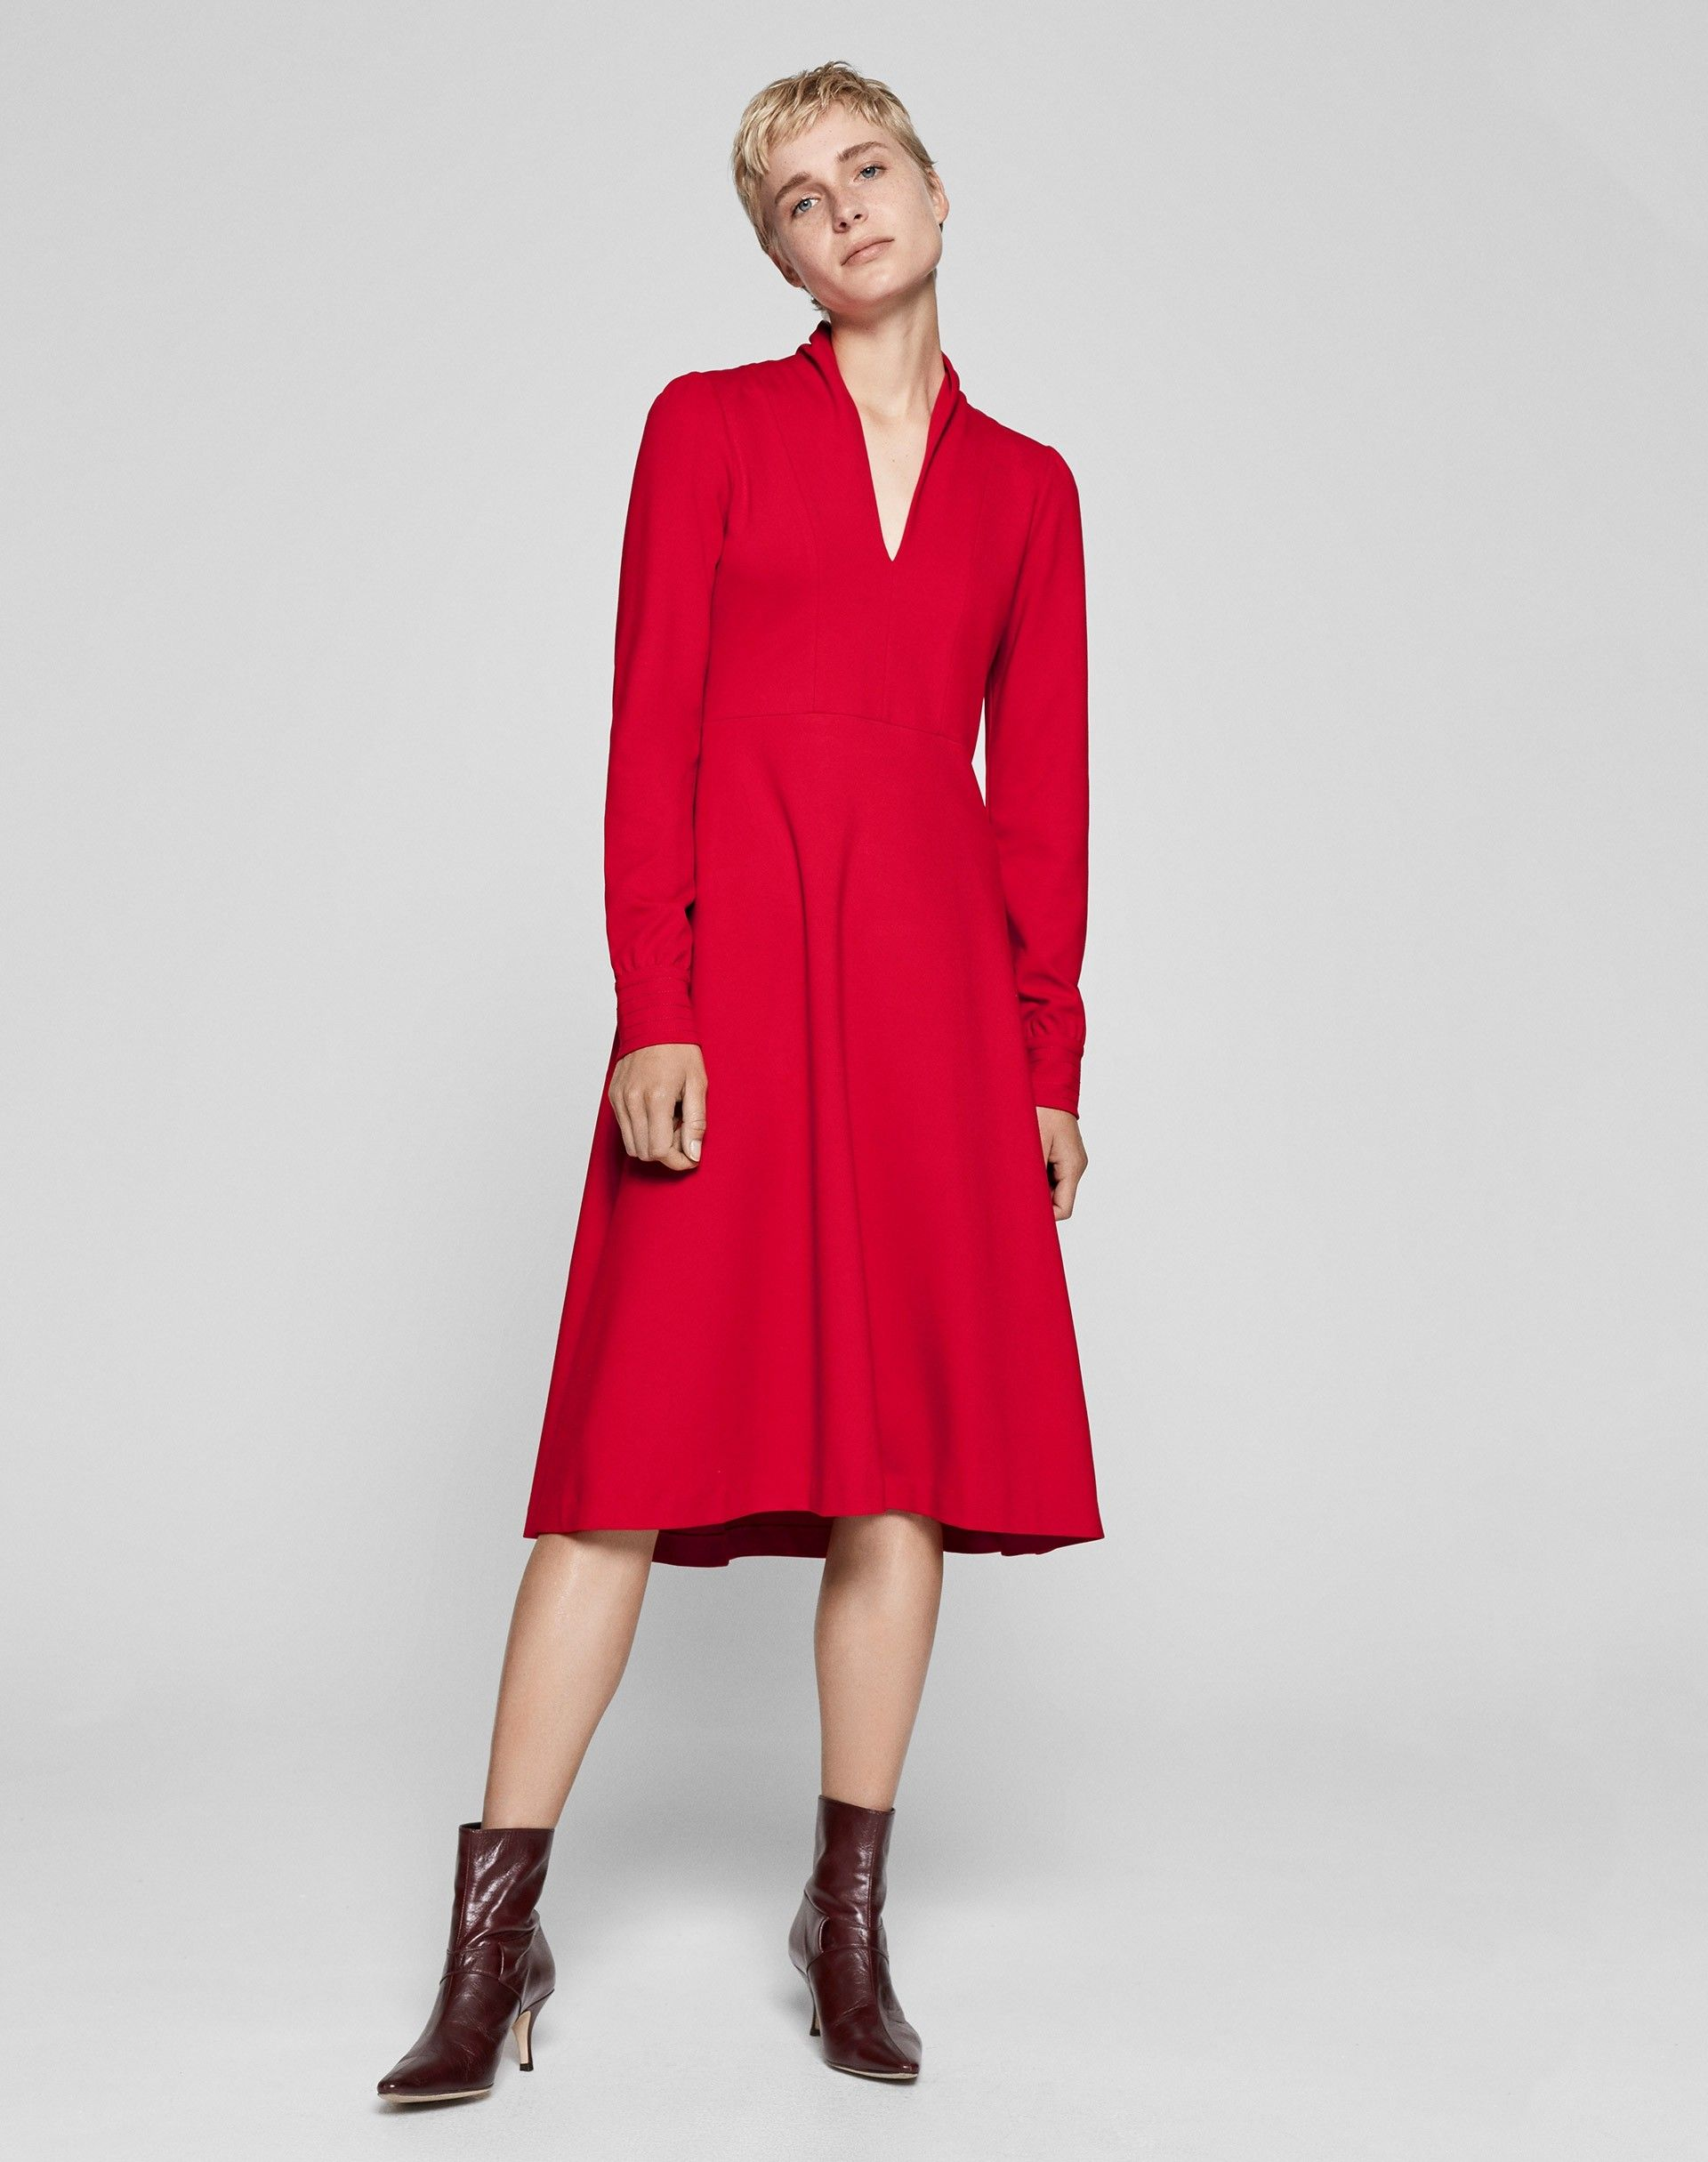 This seasonus biggest trend is red hot whether worn headtotoe or